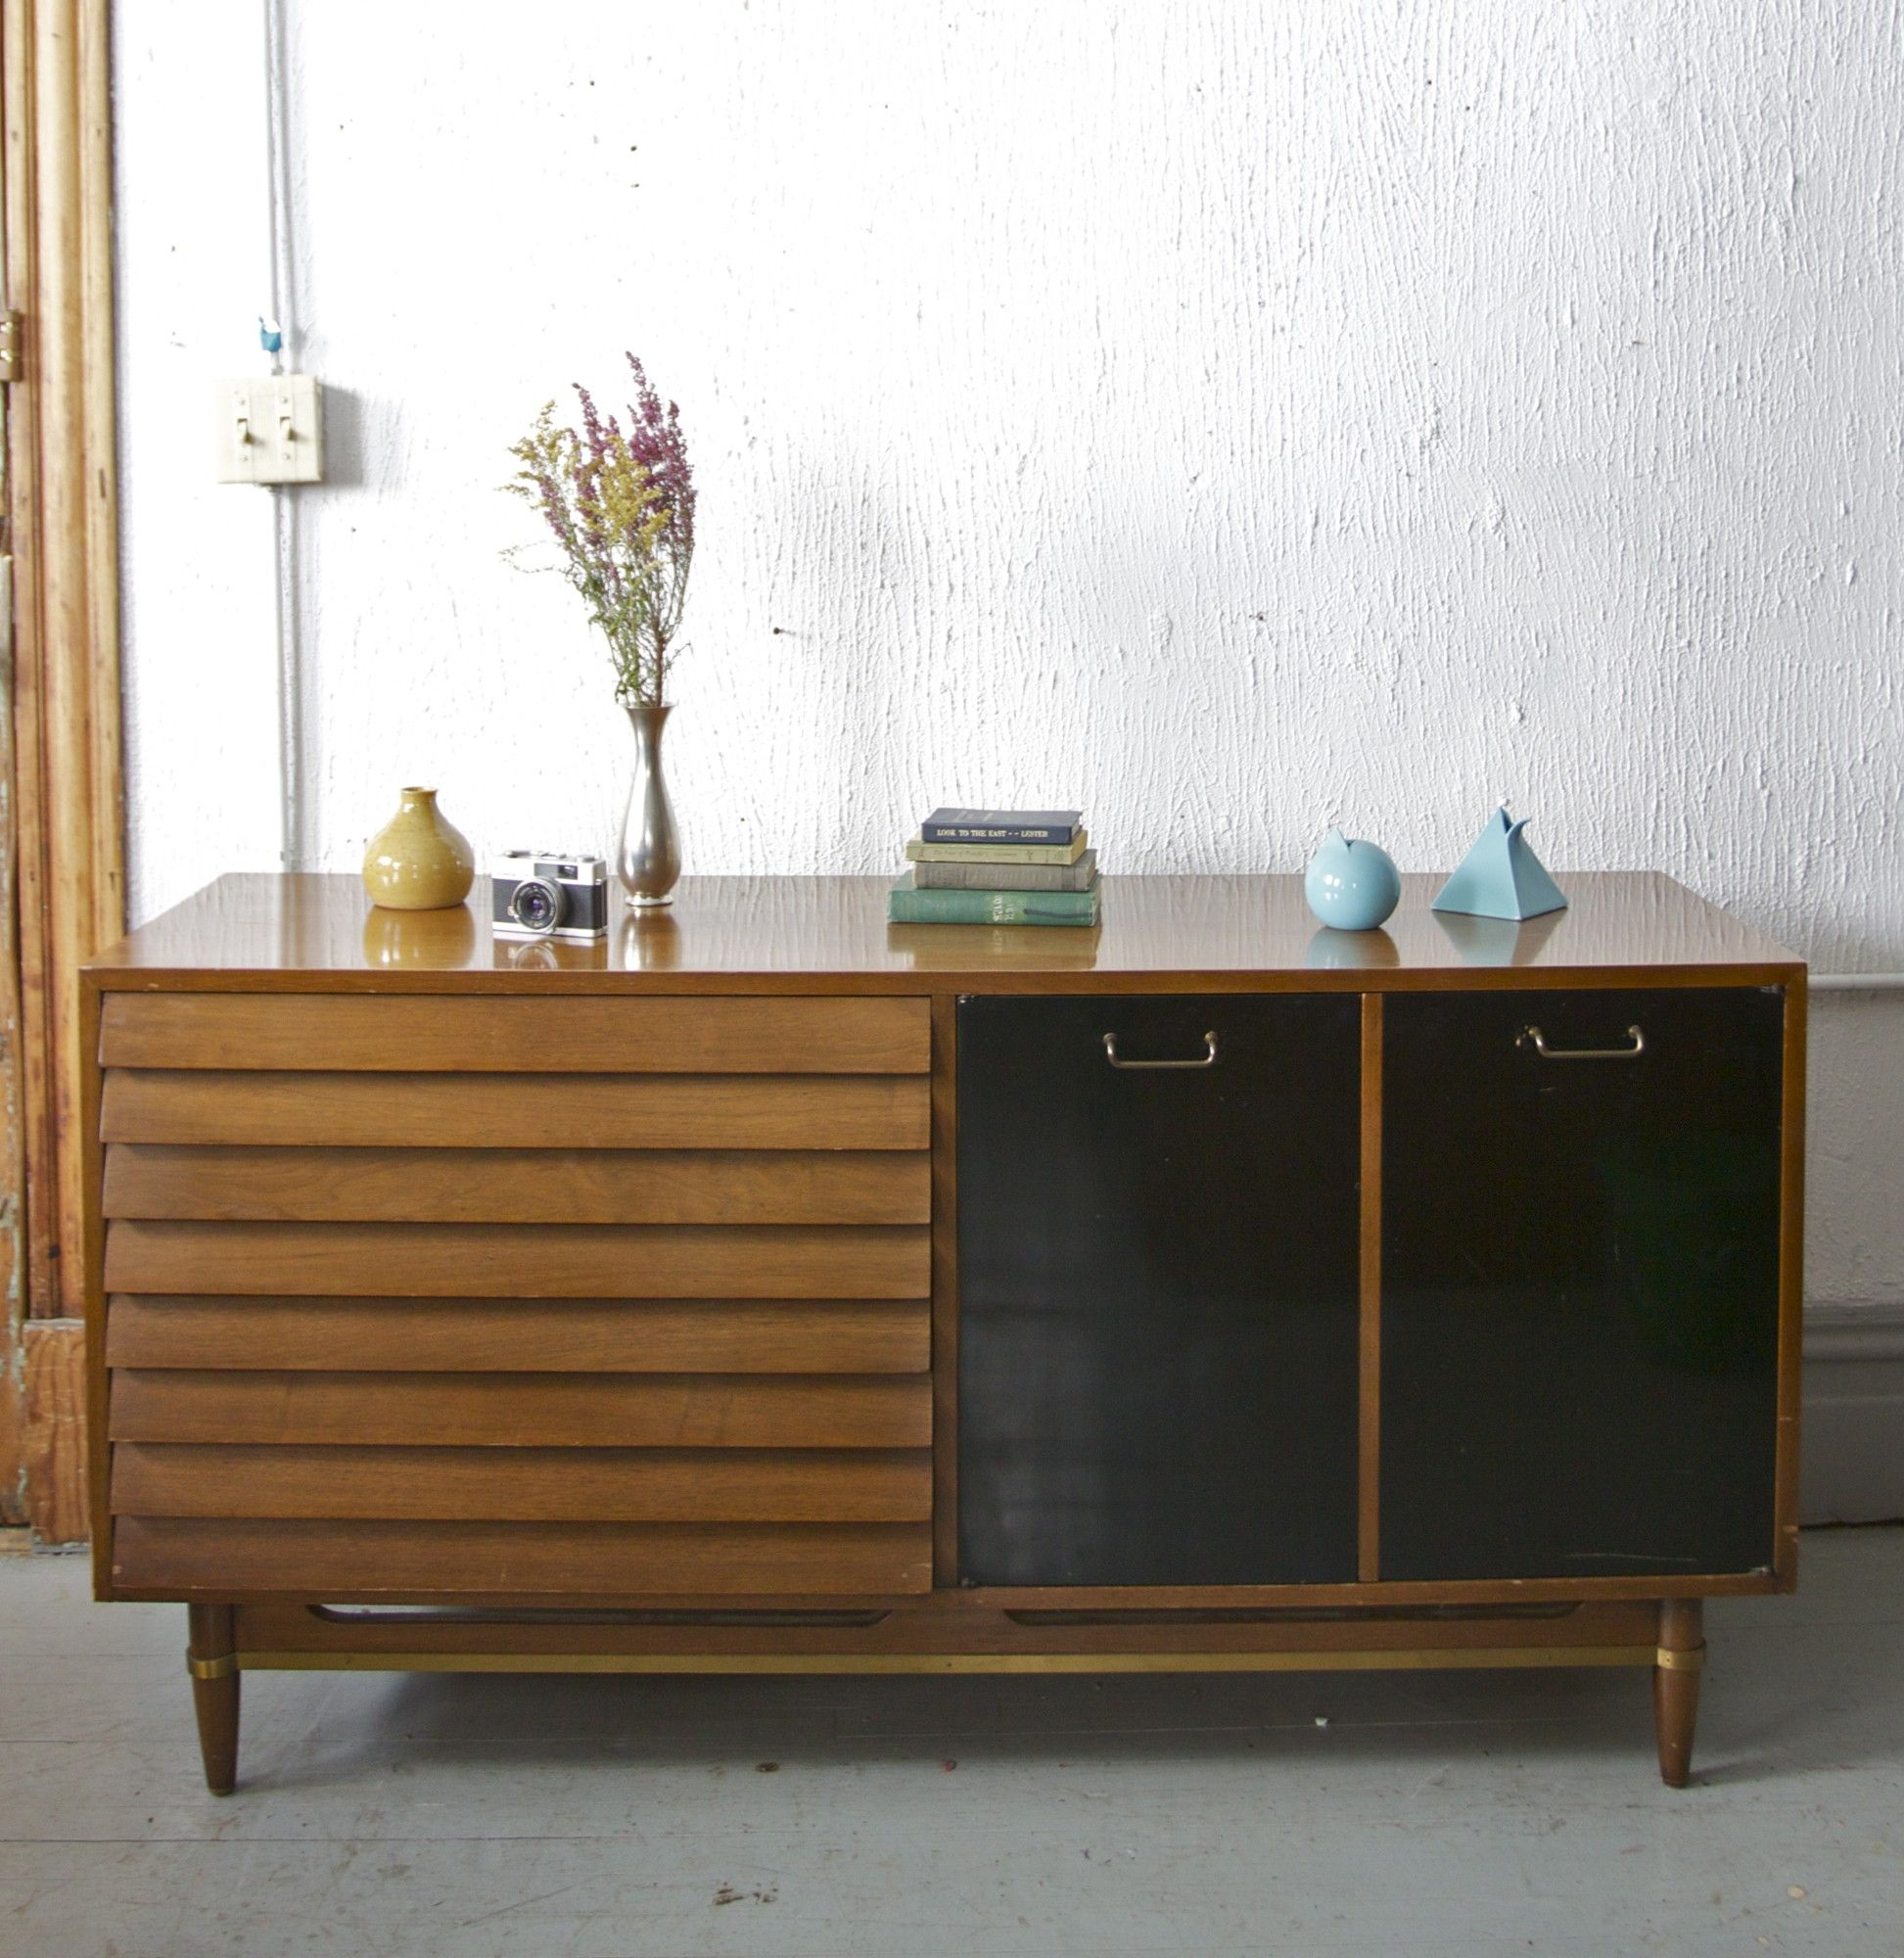 MCM Buffet Sideboard $895 Chicago